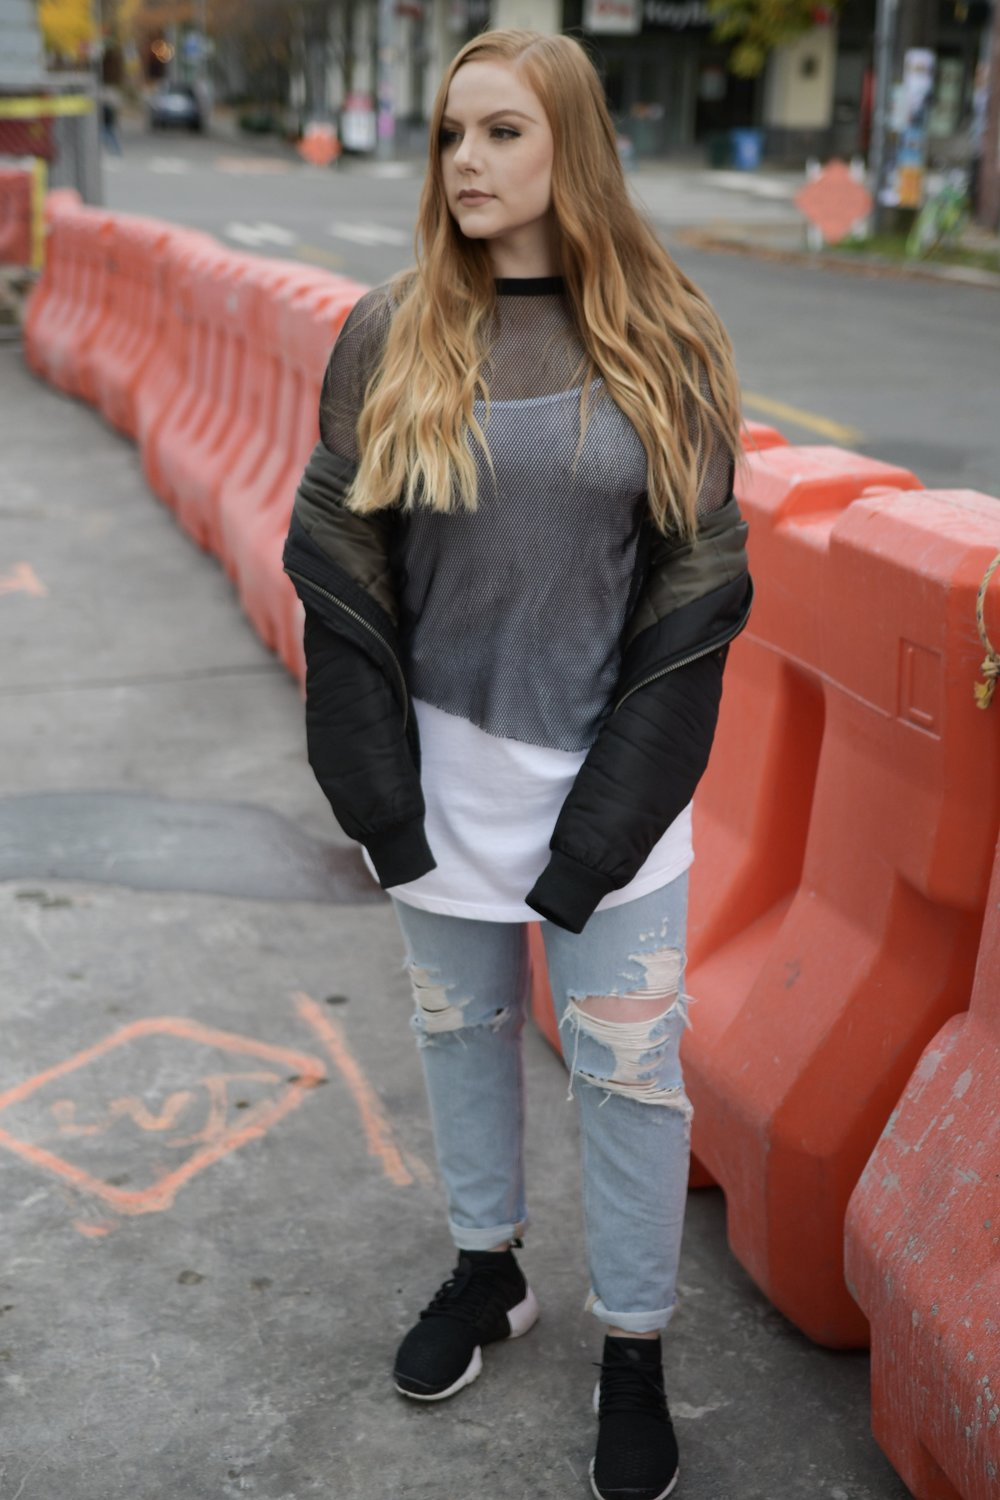 - If I'm not wearing yoga pants + a cropped sweatshirt you'll find me in distressed jeans and a tee.My goto outfit always includes some pair of Nikes, black outerwear and a casual top.